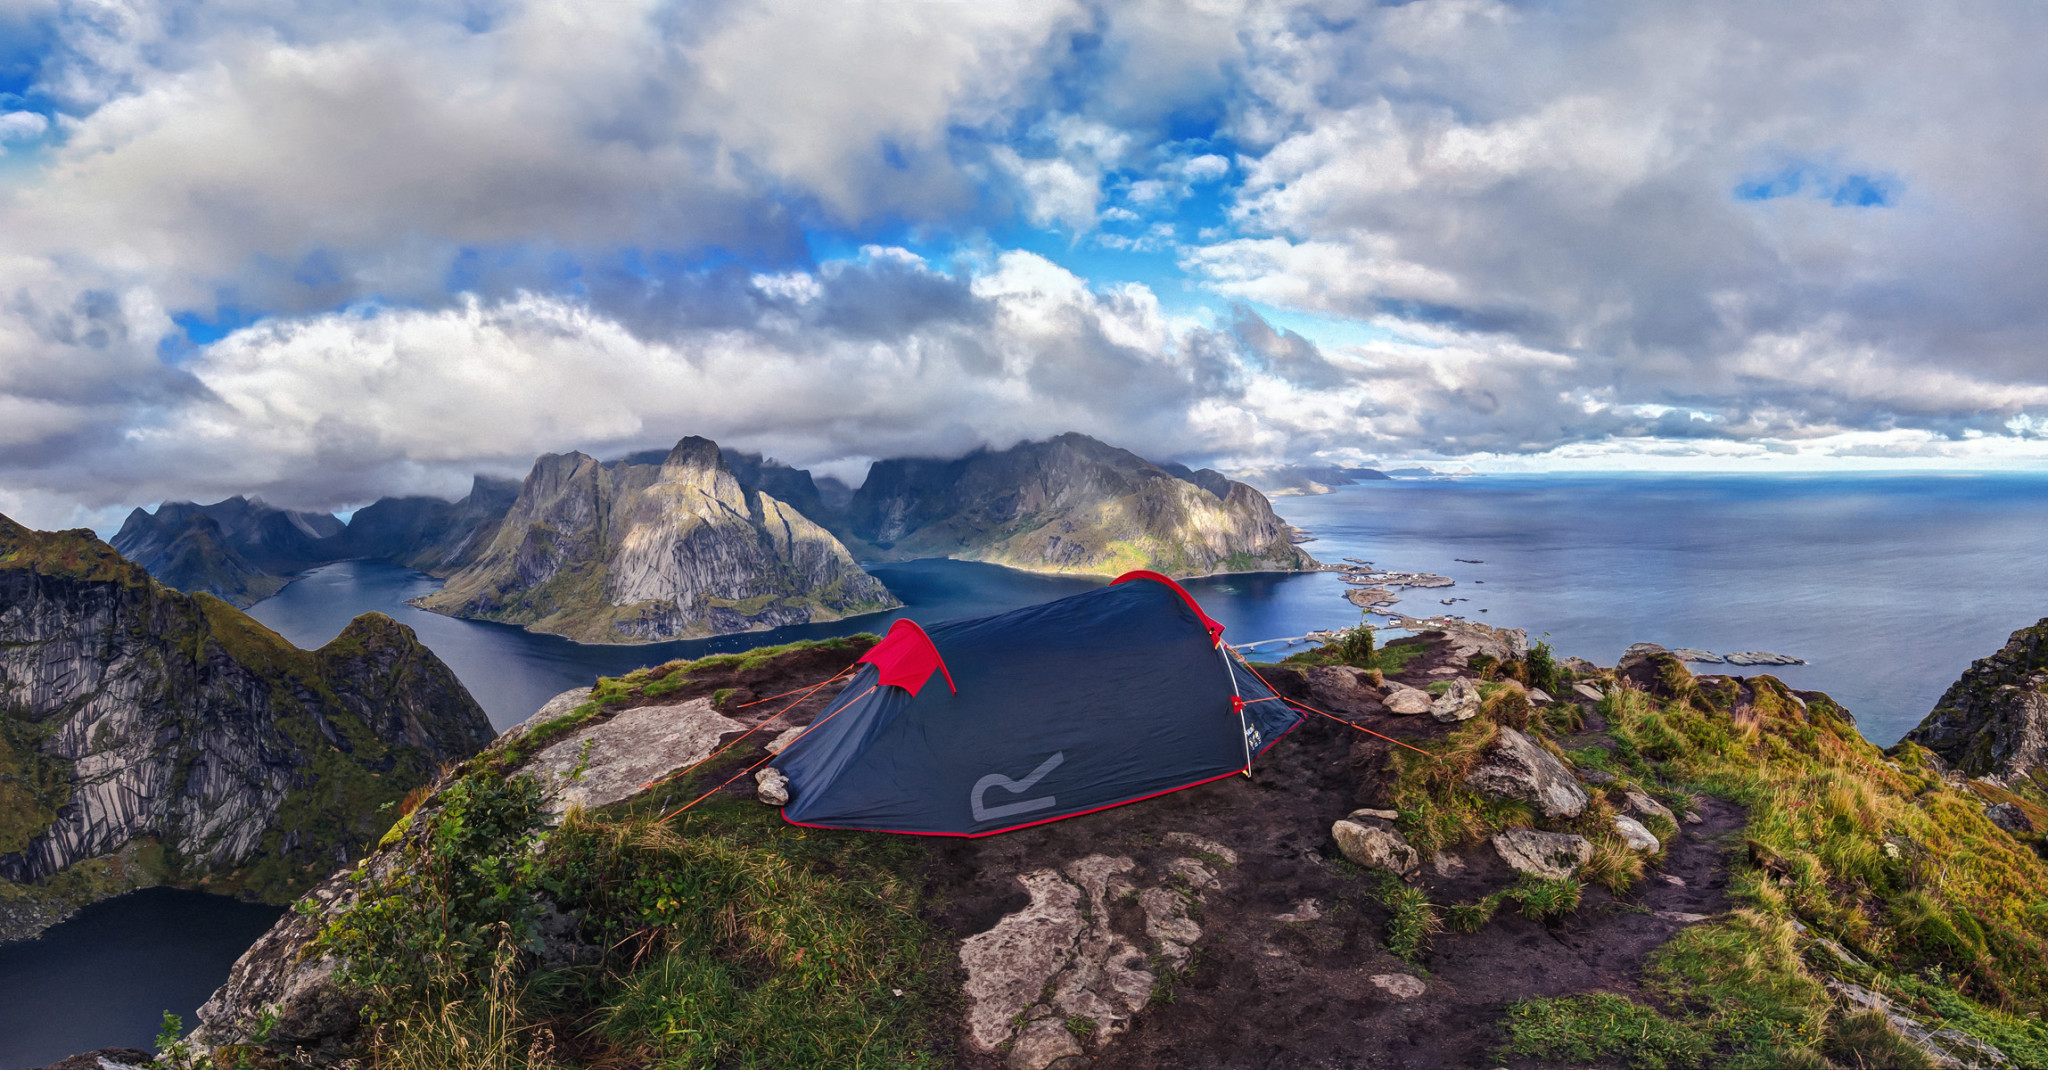 Lofoten My Dream – page about Lofoten and our northern adventure